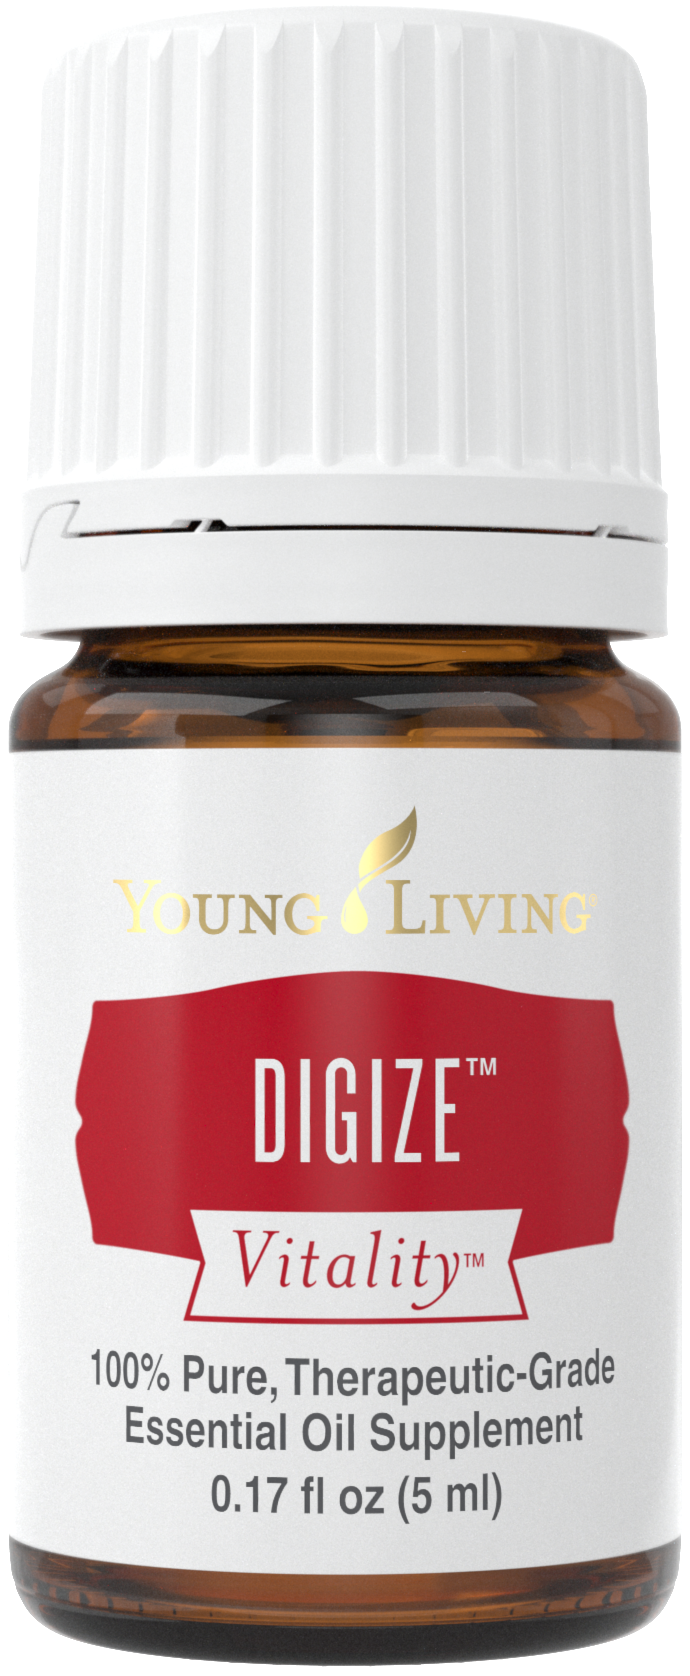 Digize Vitality benefits and uses